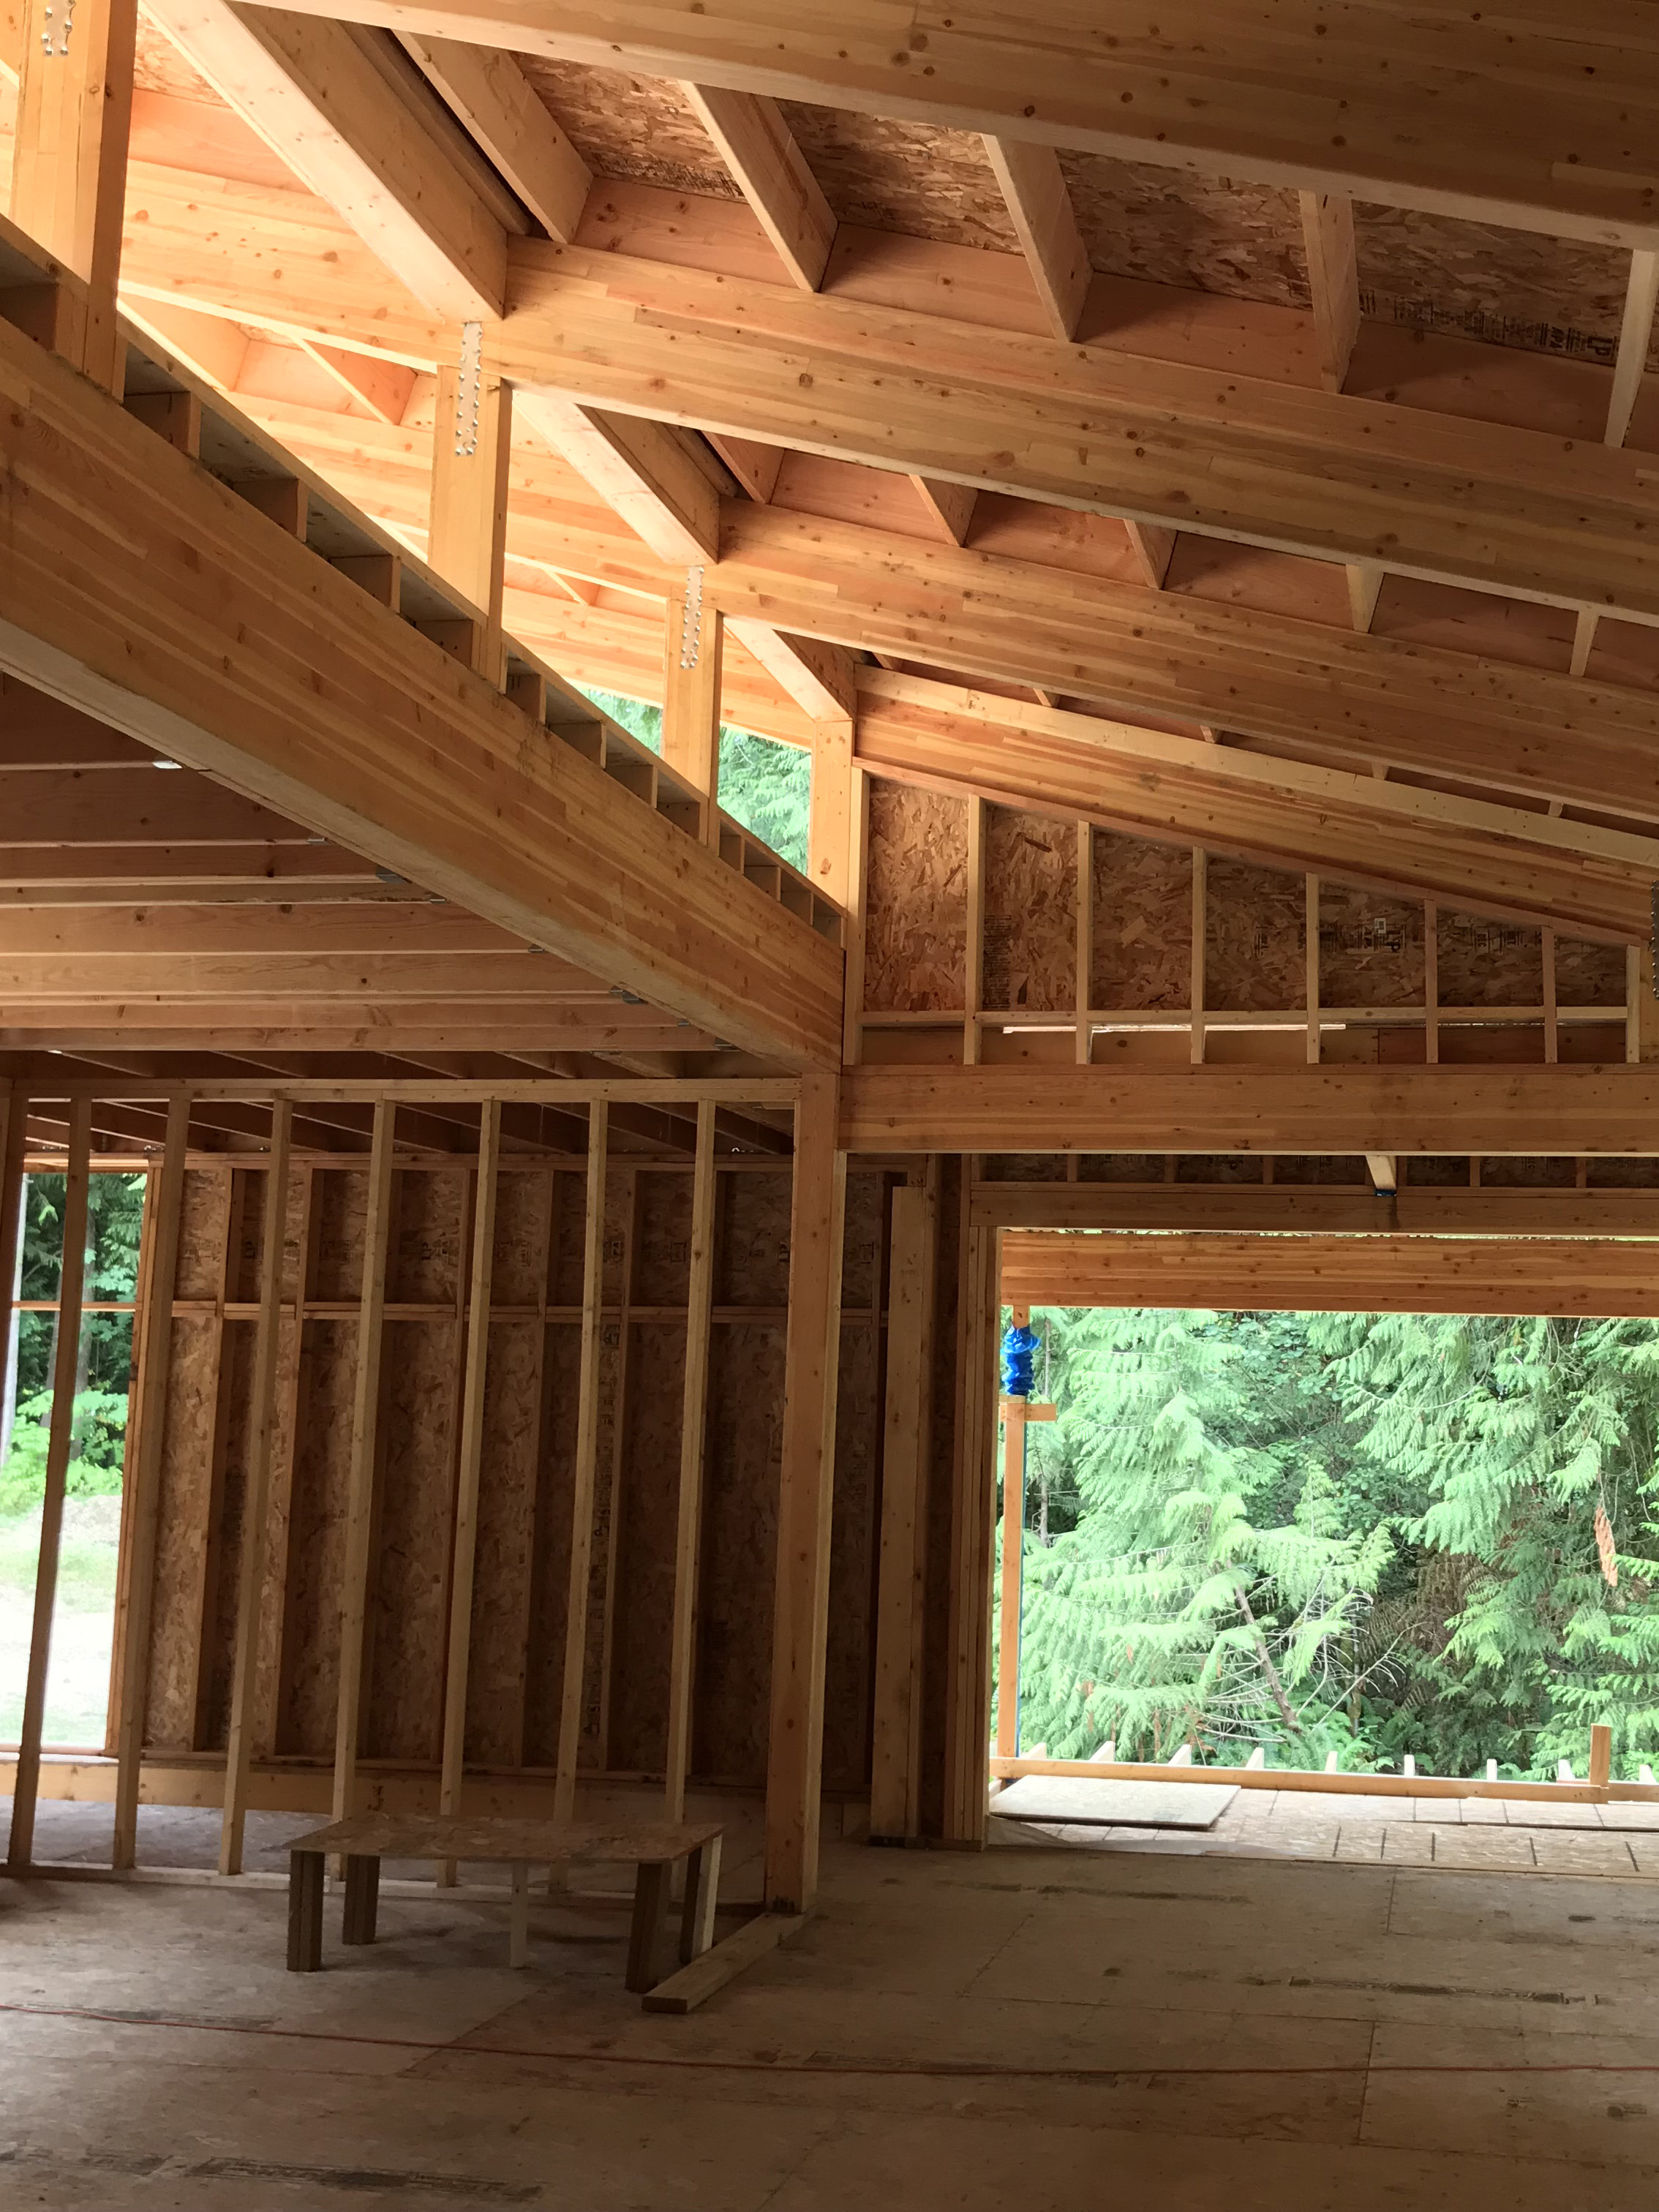 The 27' wide clerestory admits sunlight into the center of the house. The openings will be filed with operable awning widows that will allow the hot air to naturally escape, drawing cooler air in through low awning windows near the floor on the opposite window wall.